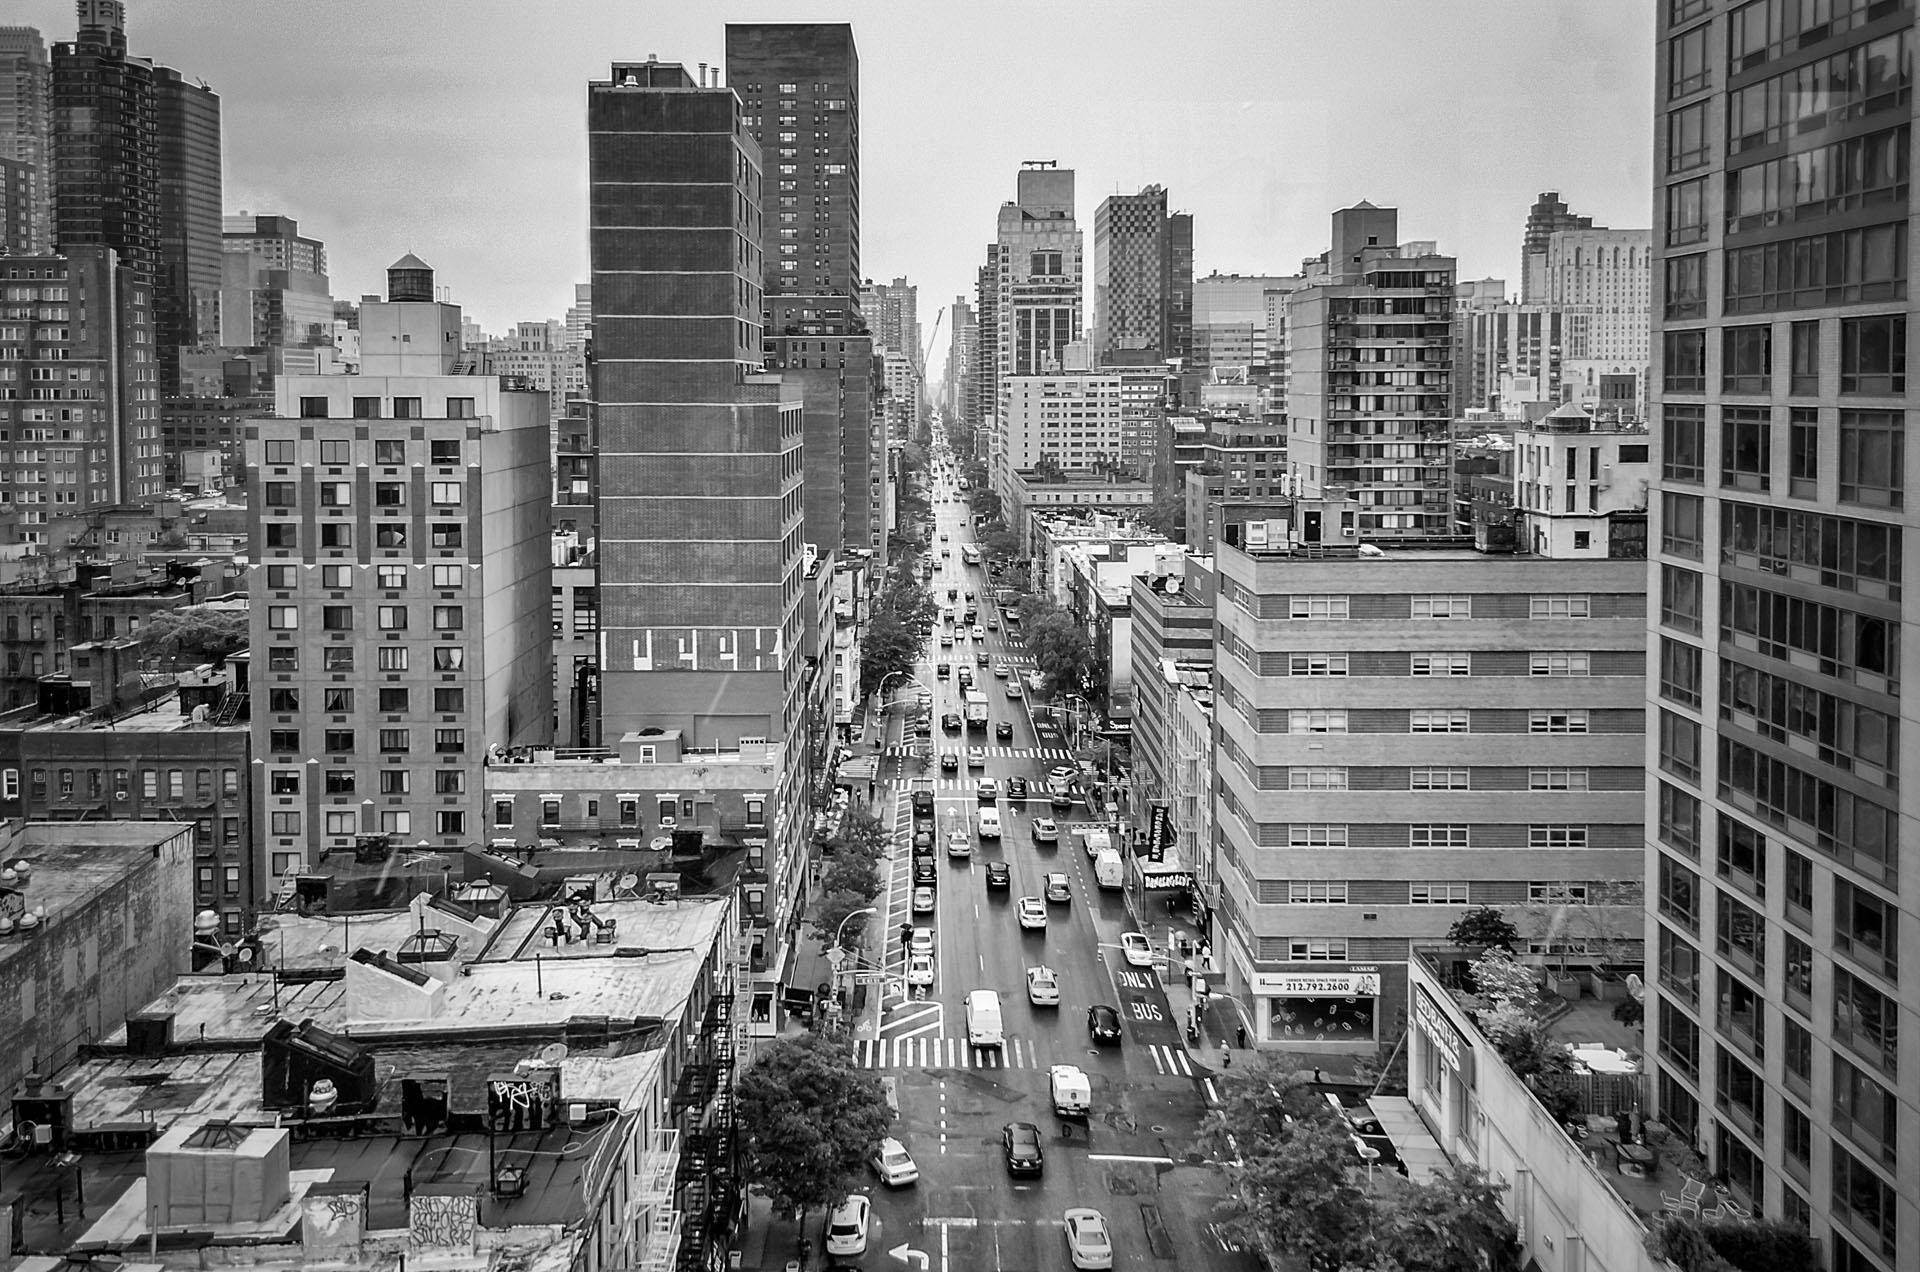 Aerial view of the 1st Avenue, New York City, USA